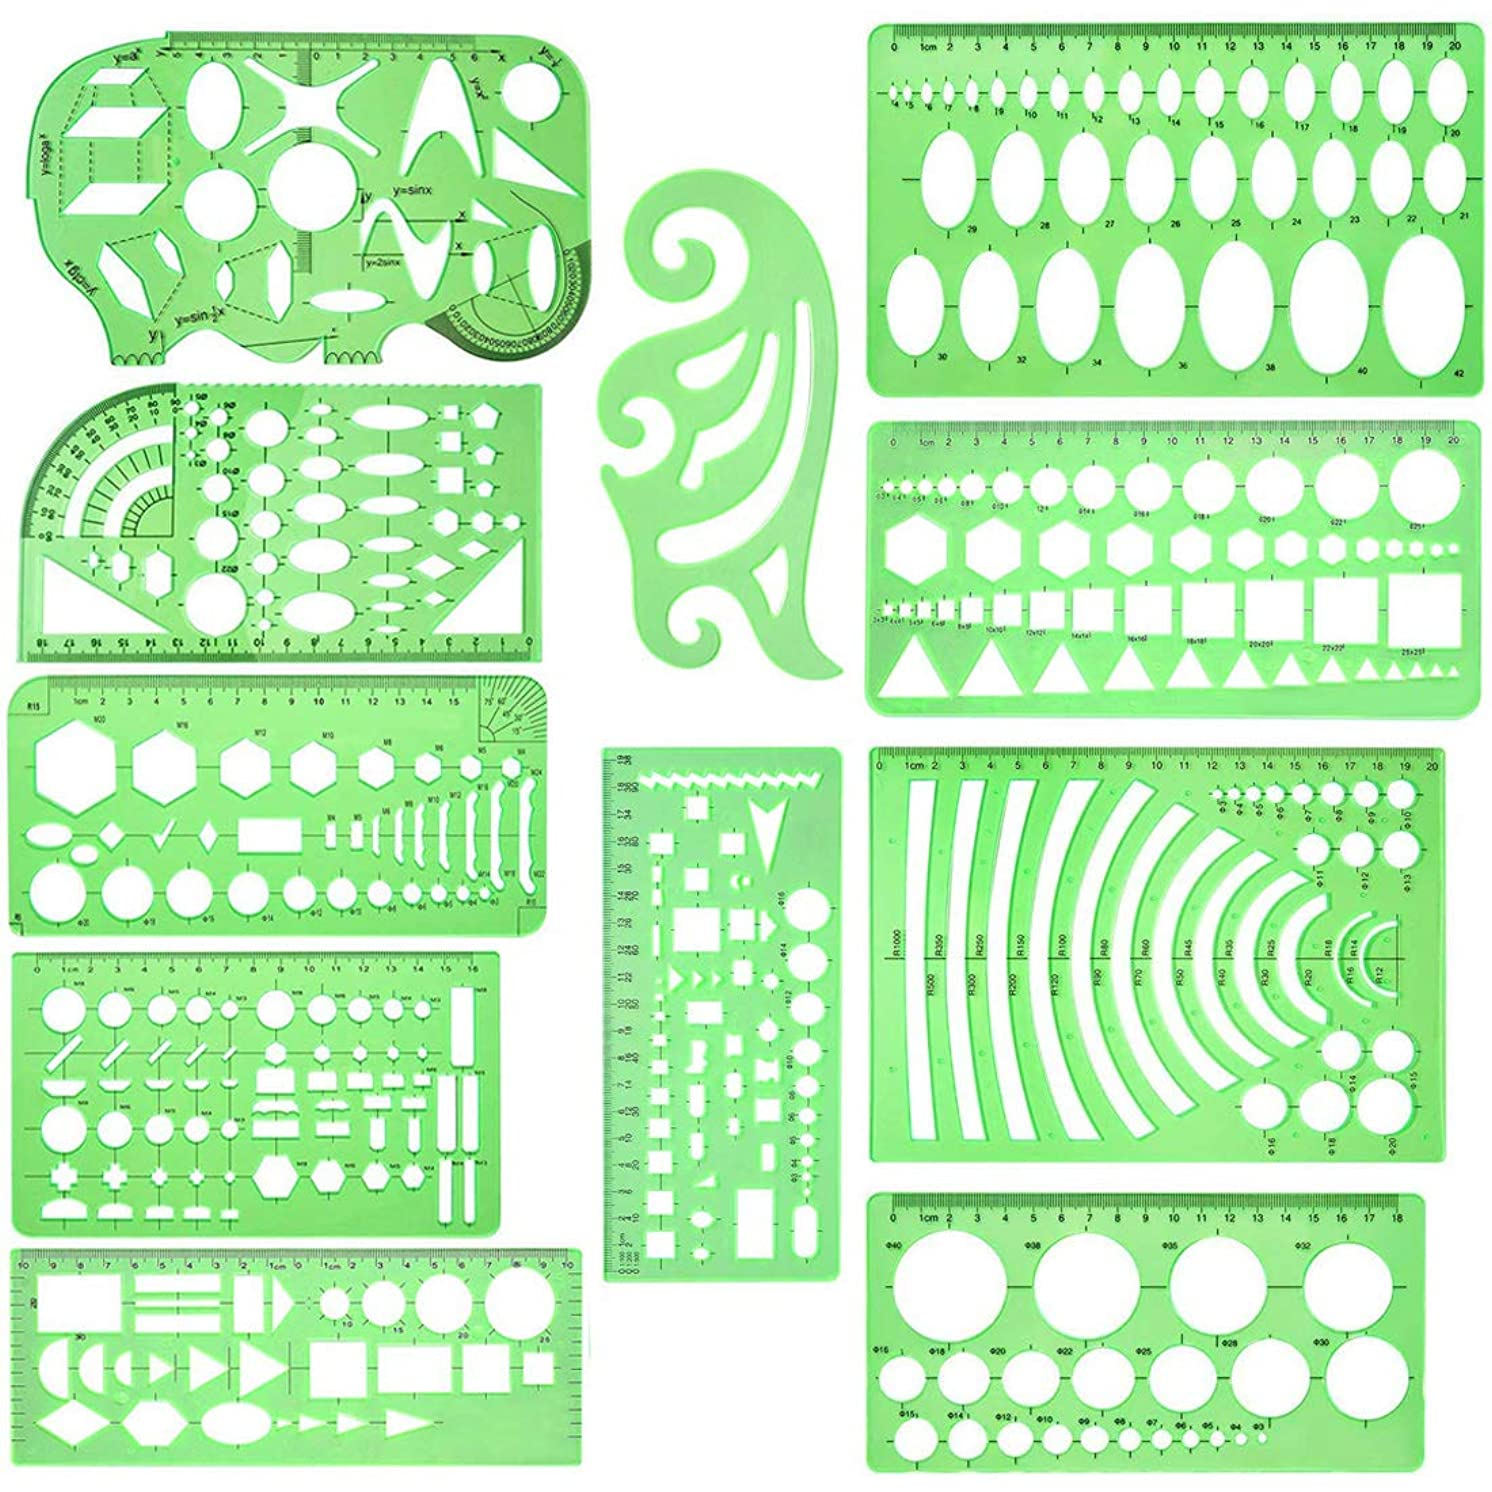 11 Pcs Geometric Drawings Templates Measuring Rulers Plastic Measuring Templates Plastic Geometry Stencils with 1 Pack Poly Zipper Envelopes for Office and School, Building Formwork, Drawings Drafting